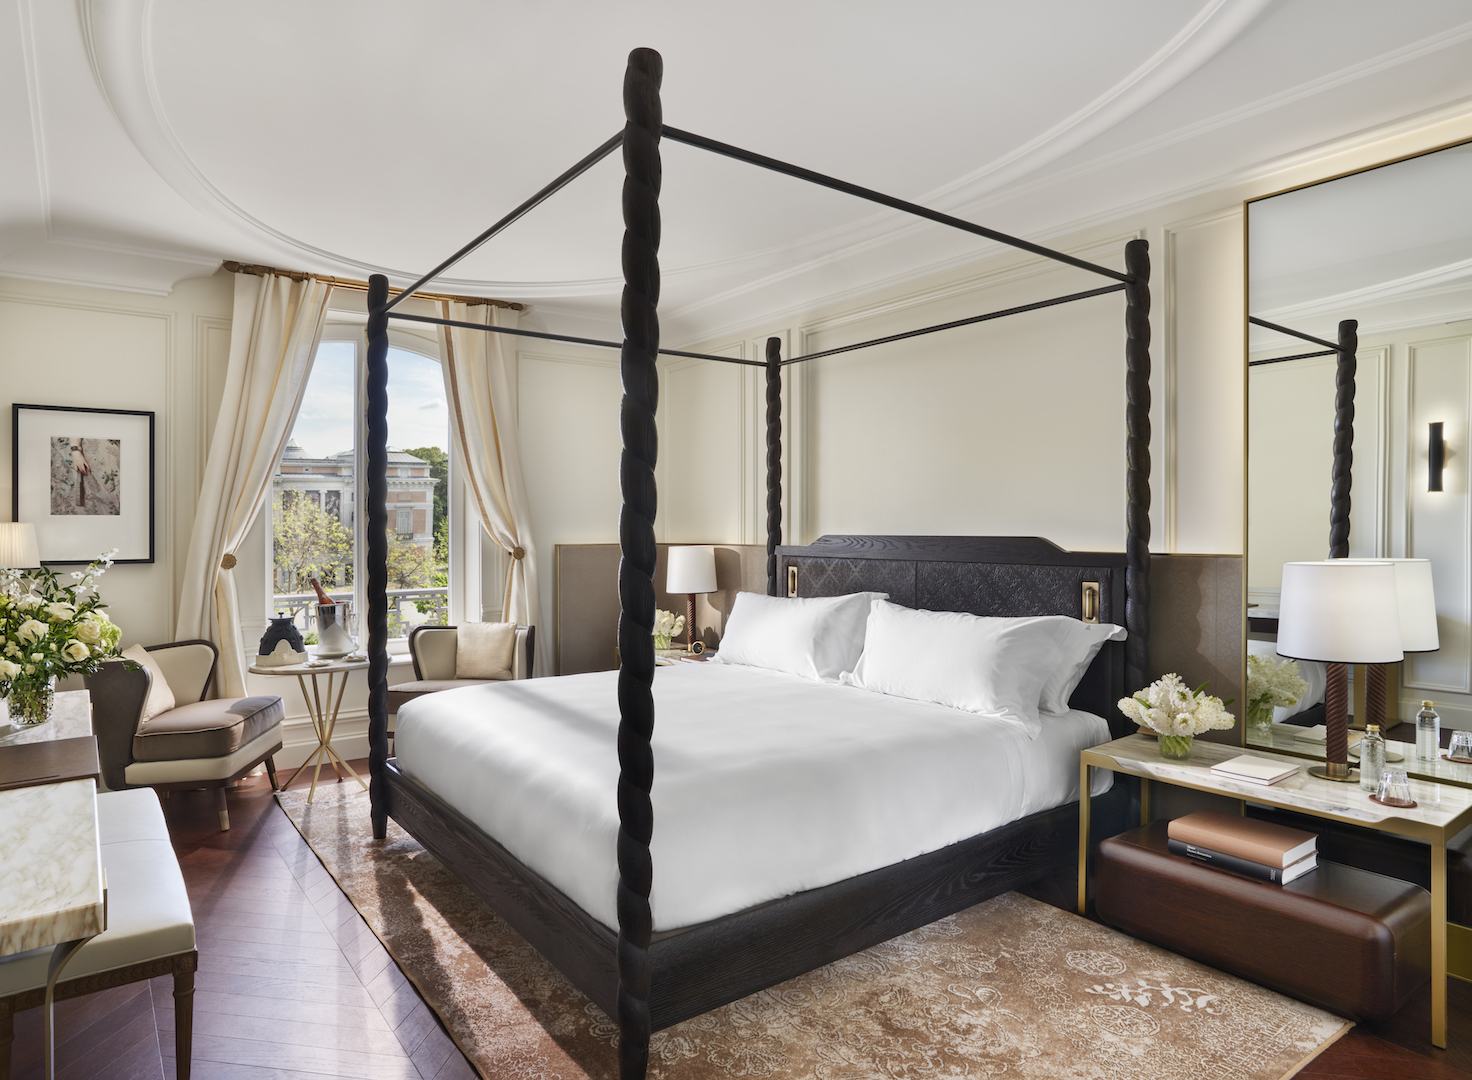 Mandarin Oriental Ritz, Madrid now officially open - Deluxe Room